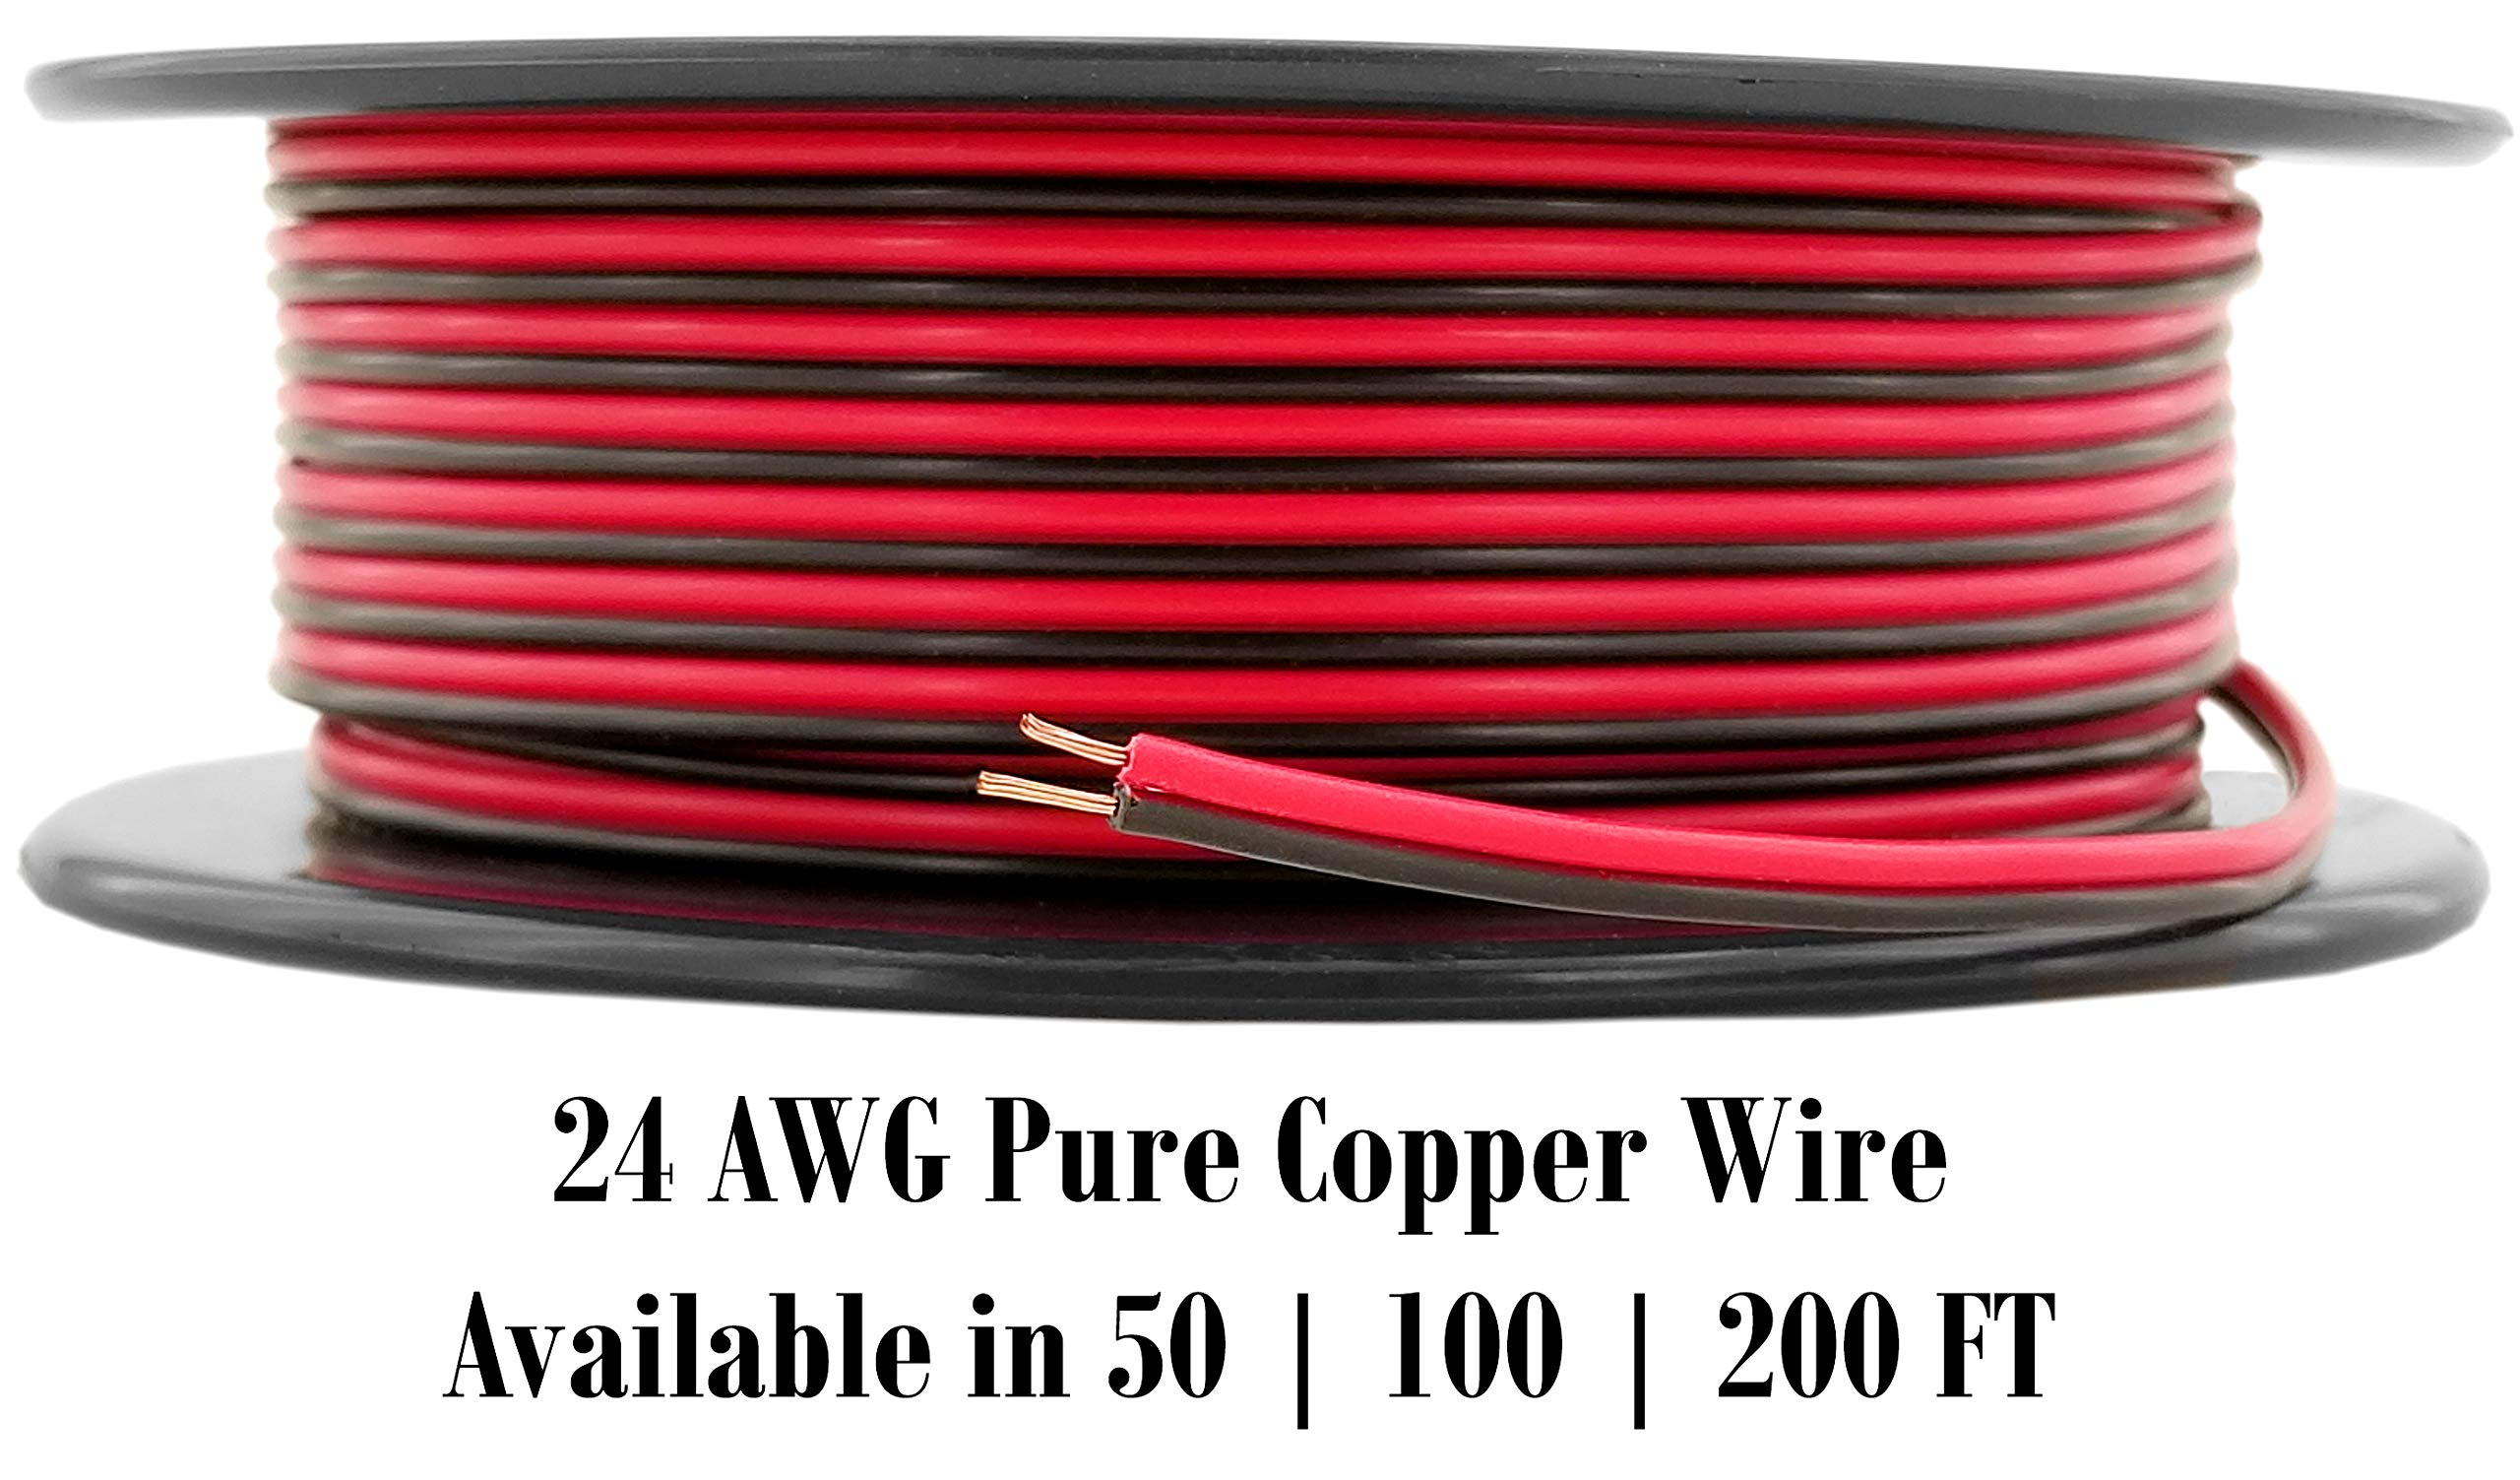 GS Power 24 AWG (American Wire Gauge) 200 feet Pure Copper Red Black Bonded Zip Cord Cable for Car Audio 12Volt Automotive LED Light Harness Wiring (Also Available in 50 & 100 ft roll) by GS Power